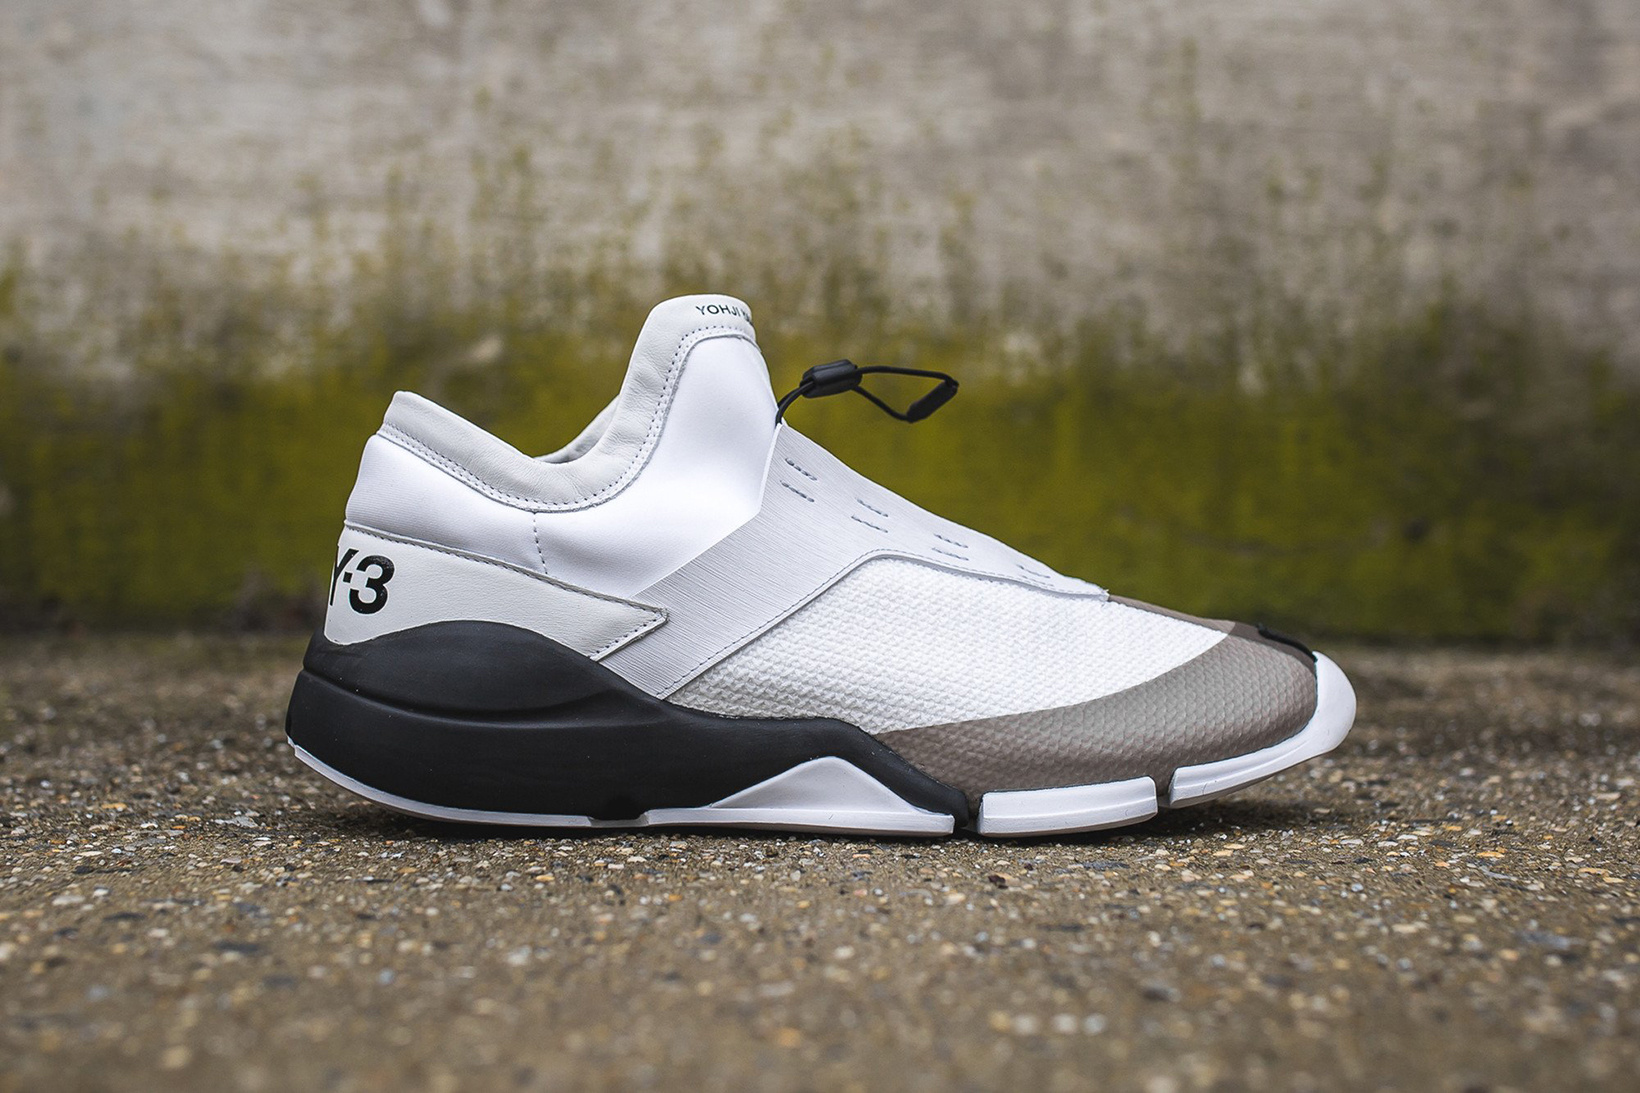 y3-future-low-white-core-black-1